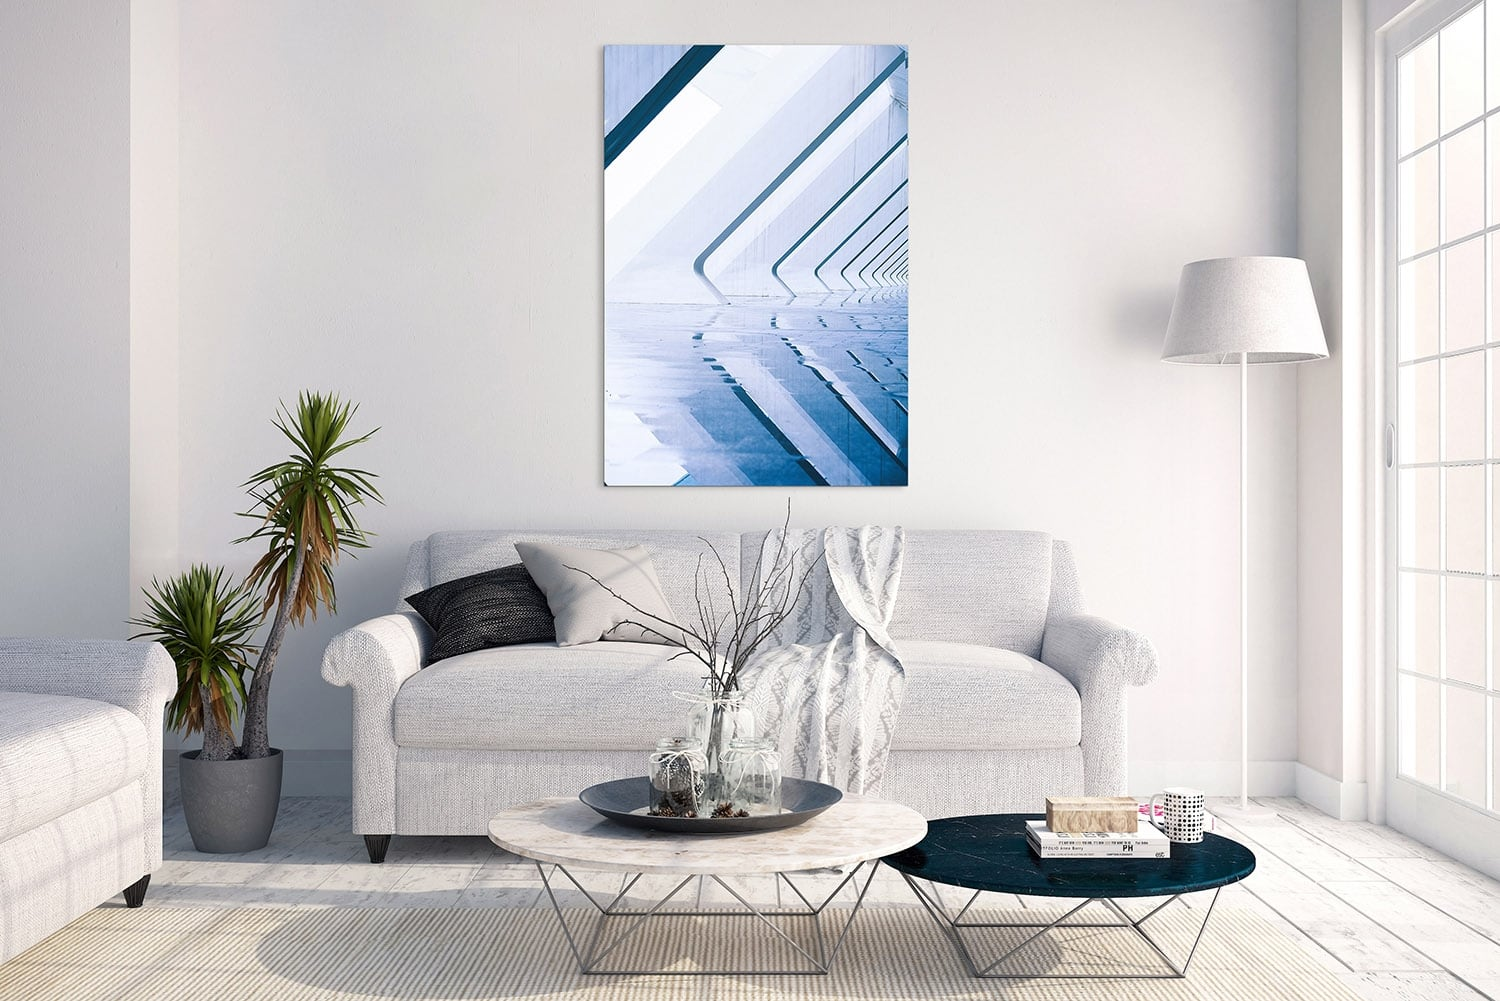 Contemporary pool art photo on aluminium for trendy interior